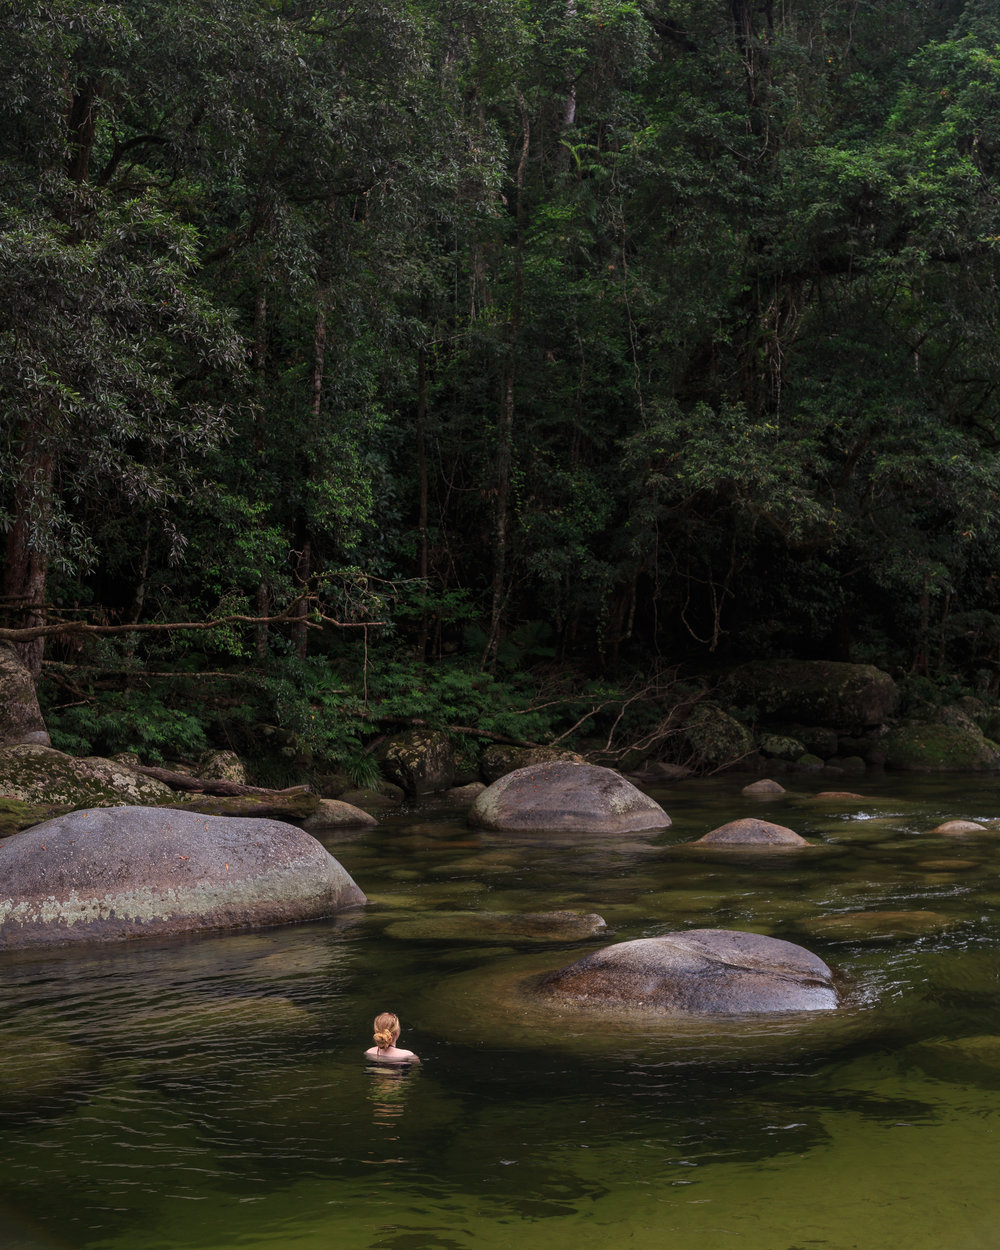 Swimming among the boulders at Mossman Gorge